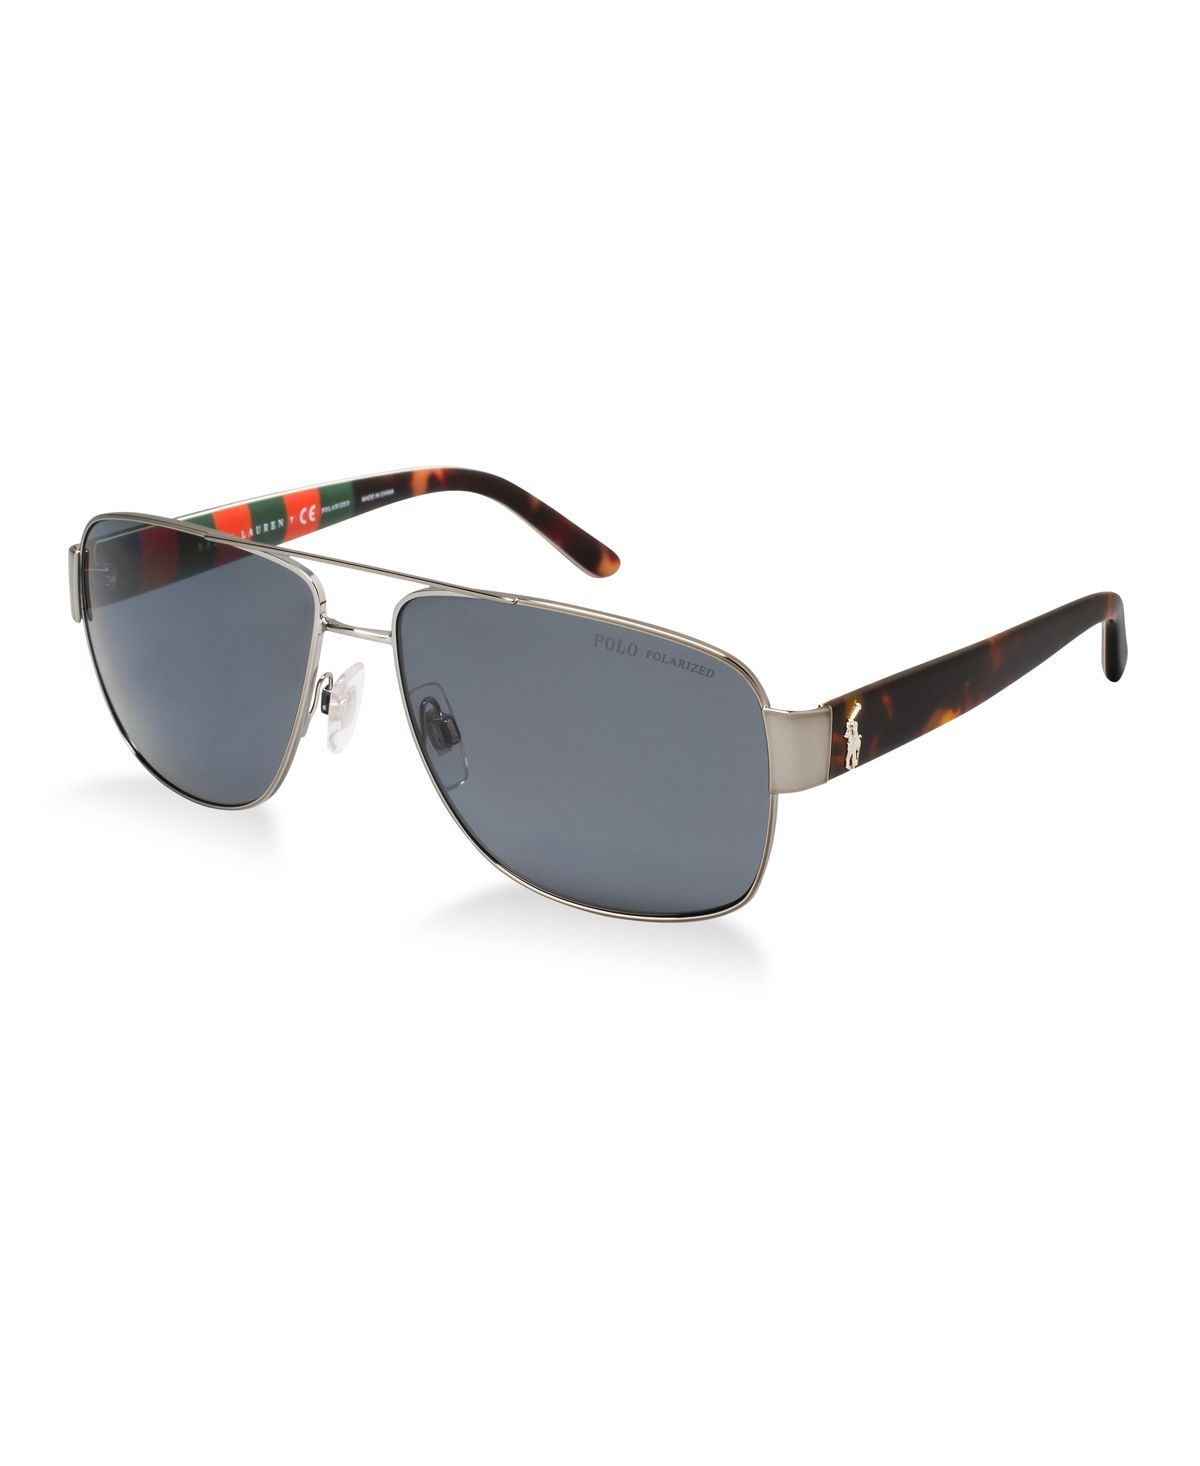 7ae349d051 ... discount code for polo ralph lauren sunglasses ph3085 sunglasses men  macys 55444 5bbba